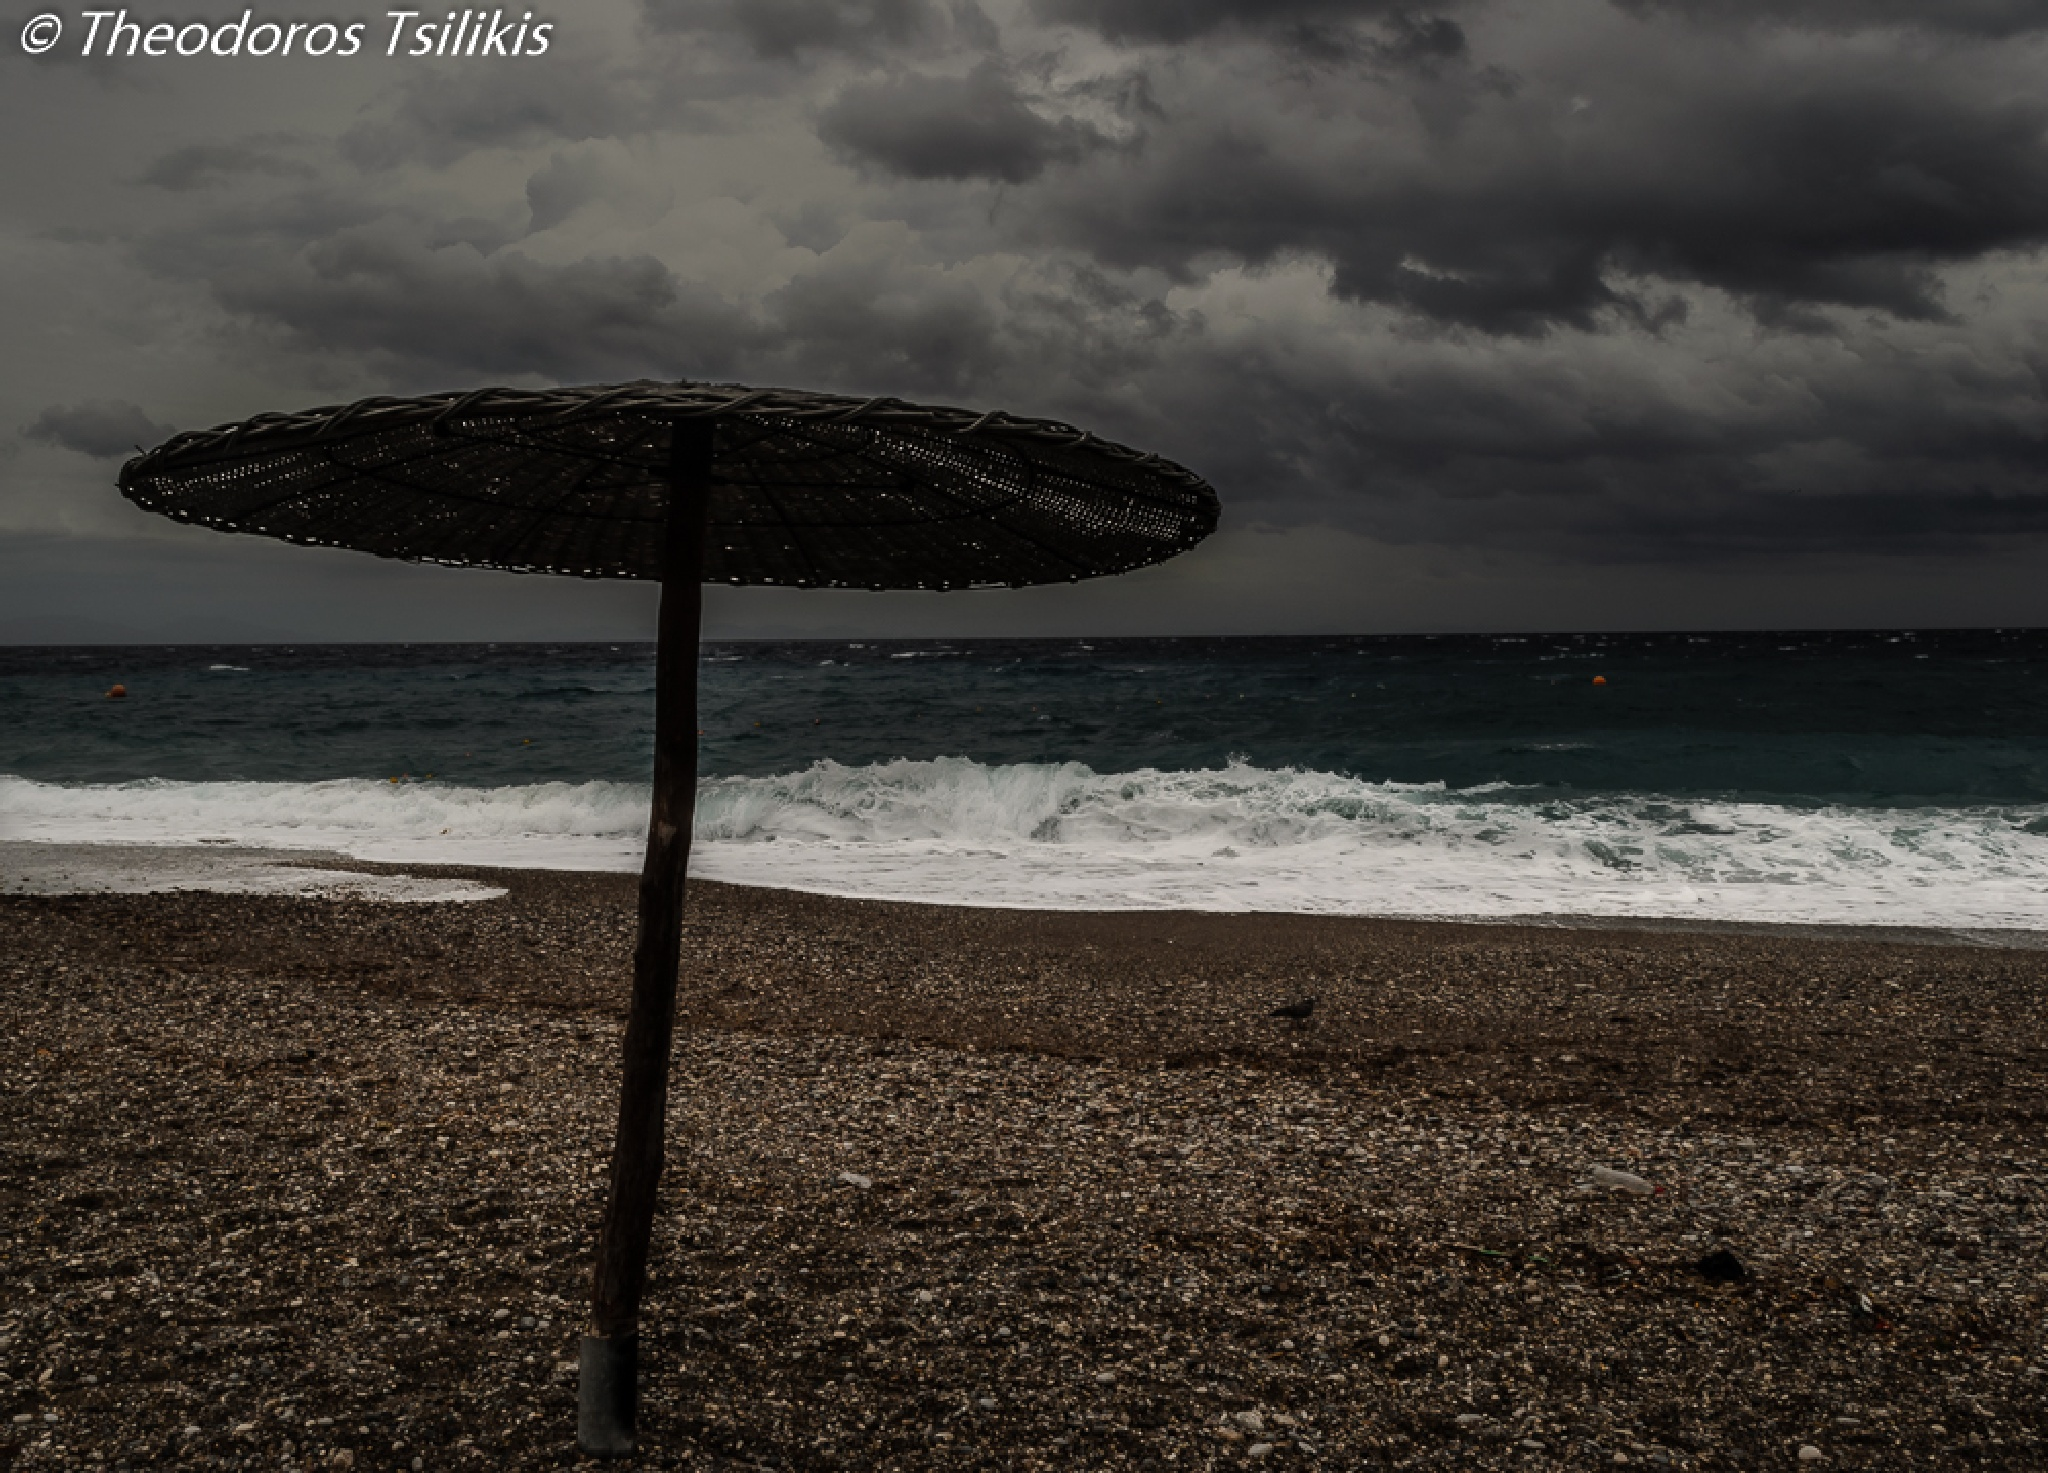 cloudy day by Theodoros Tsilikis